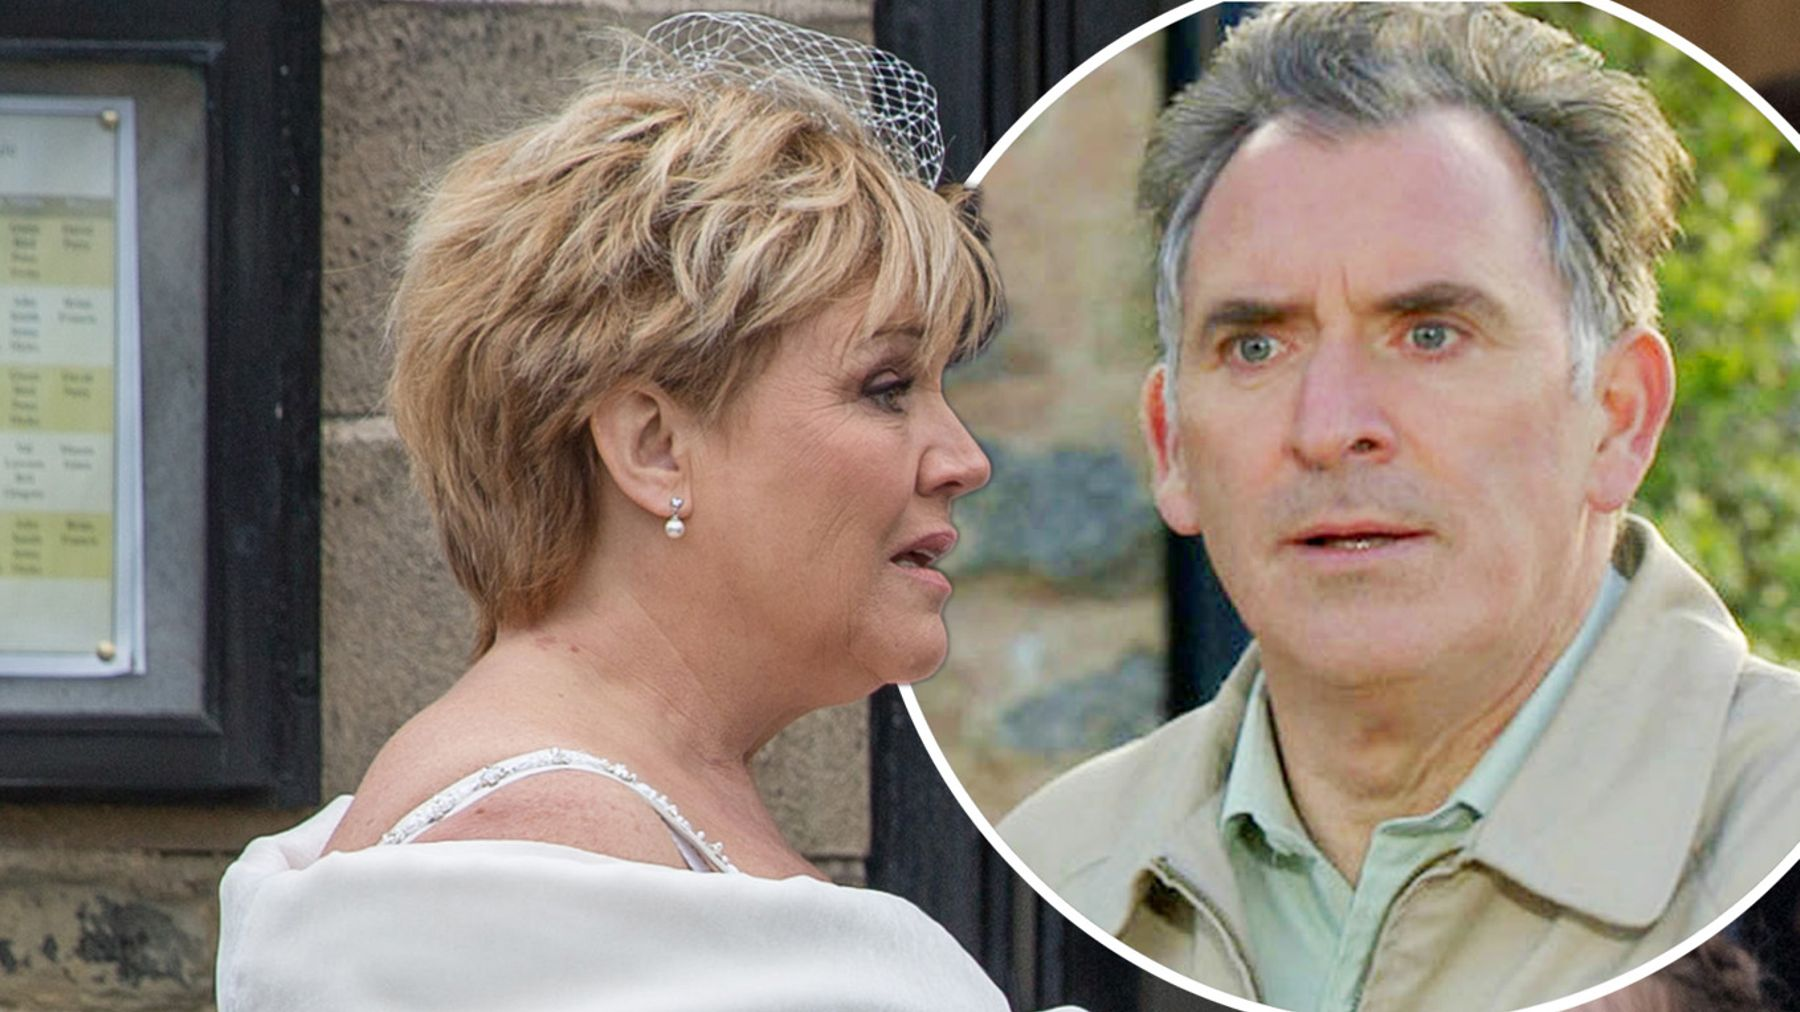 Emmerdale spoilers: Will Bob make it down the aisle with Brenda